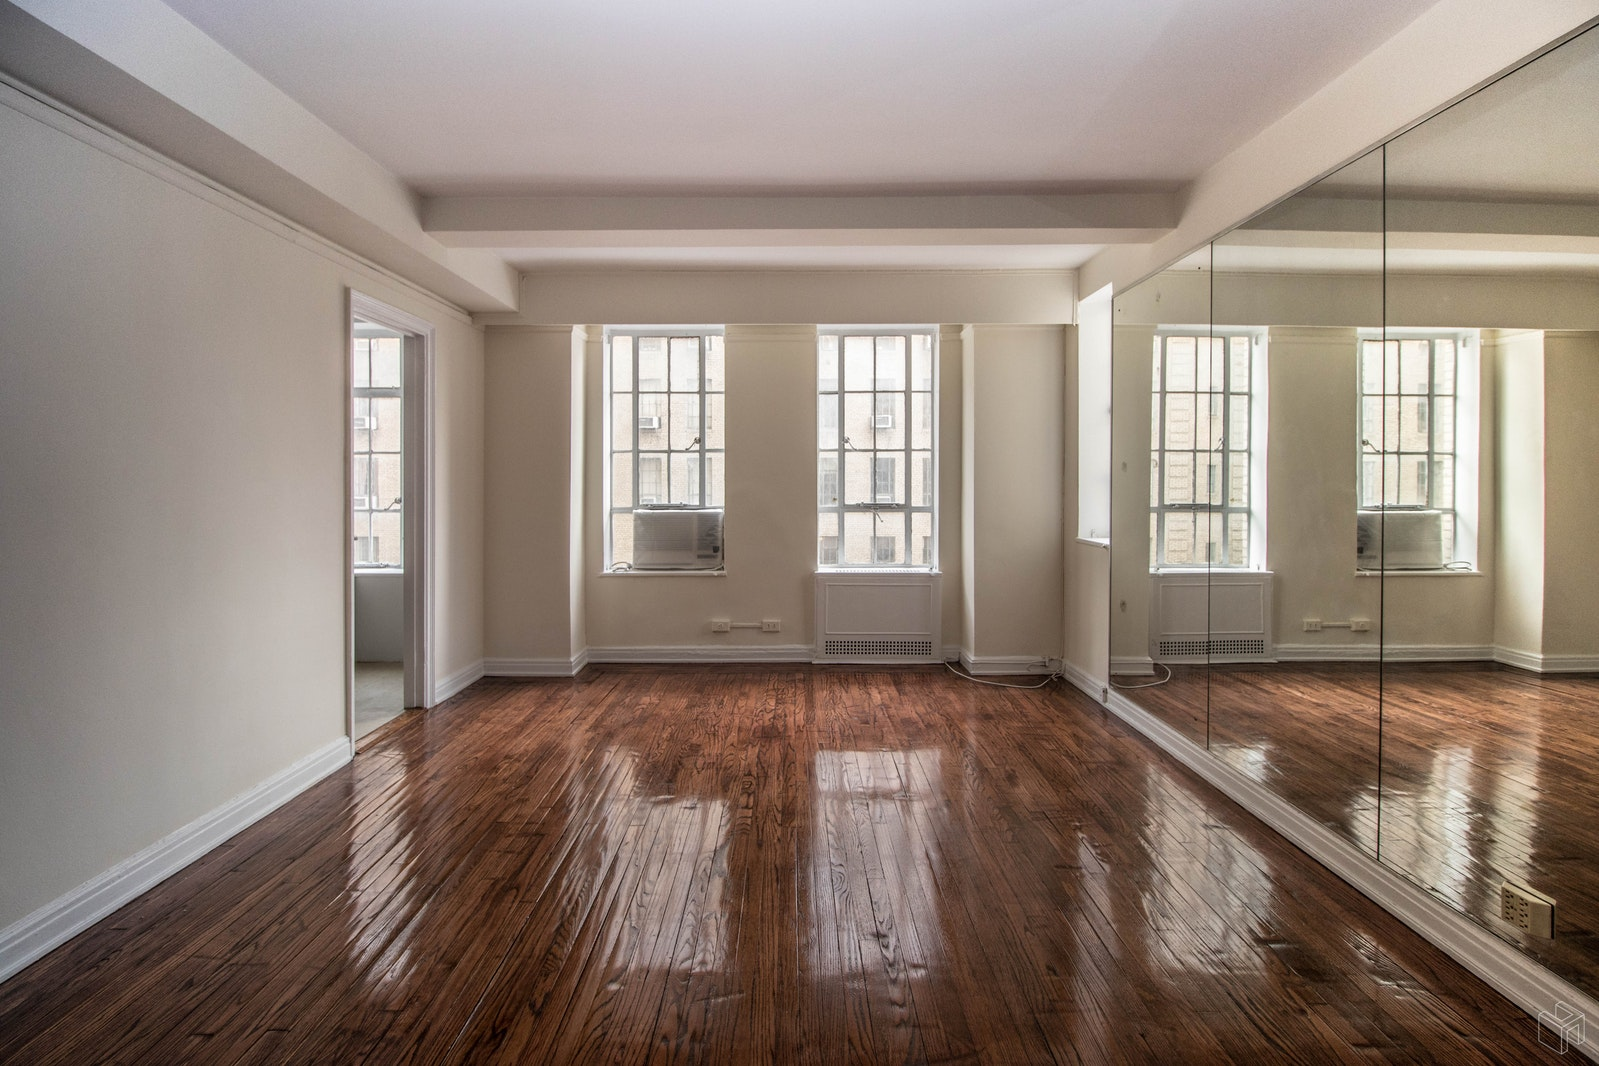 350 West 57th Street 5c, Midtown West, NYC, 10019, Price Not Disclosed, Rented Property, Halstead Real Estate, Photo 1